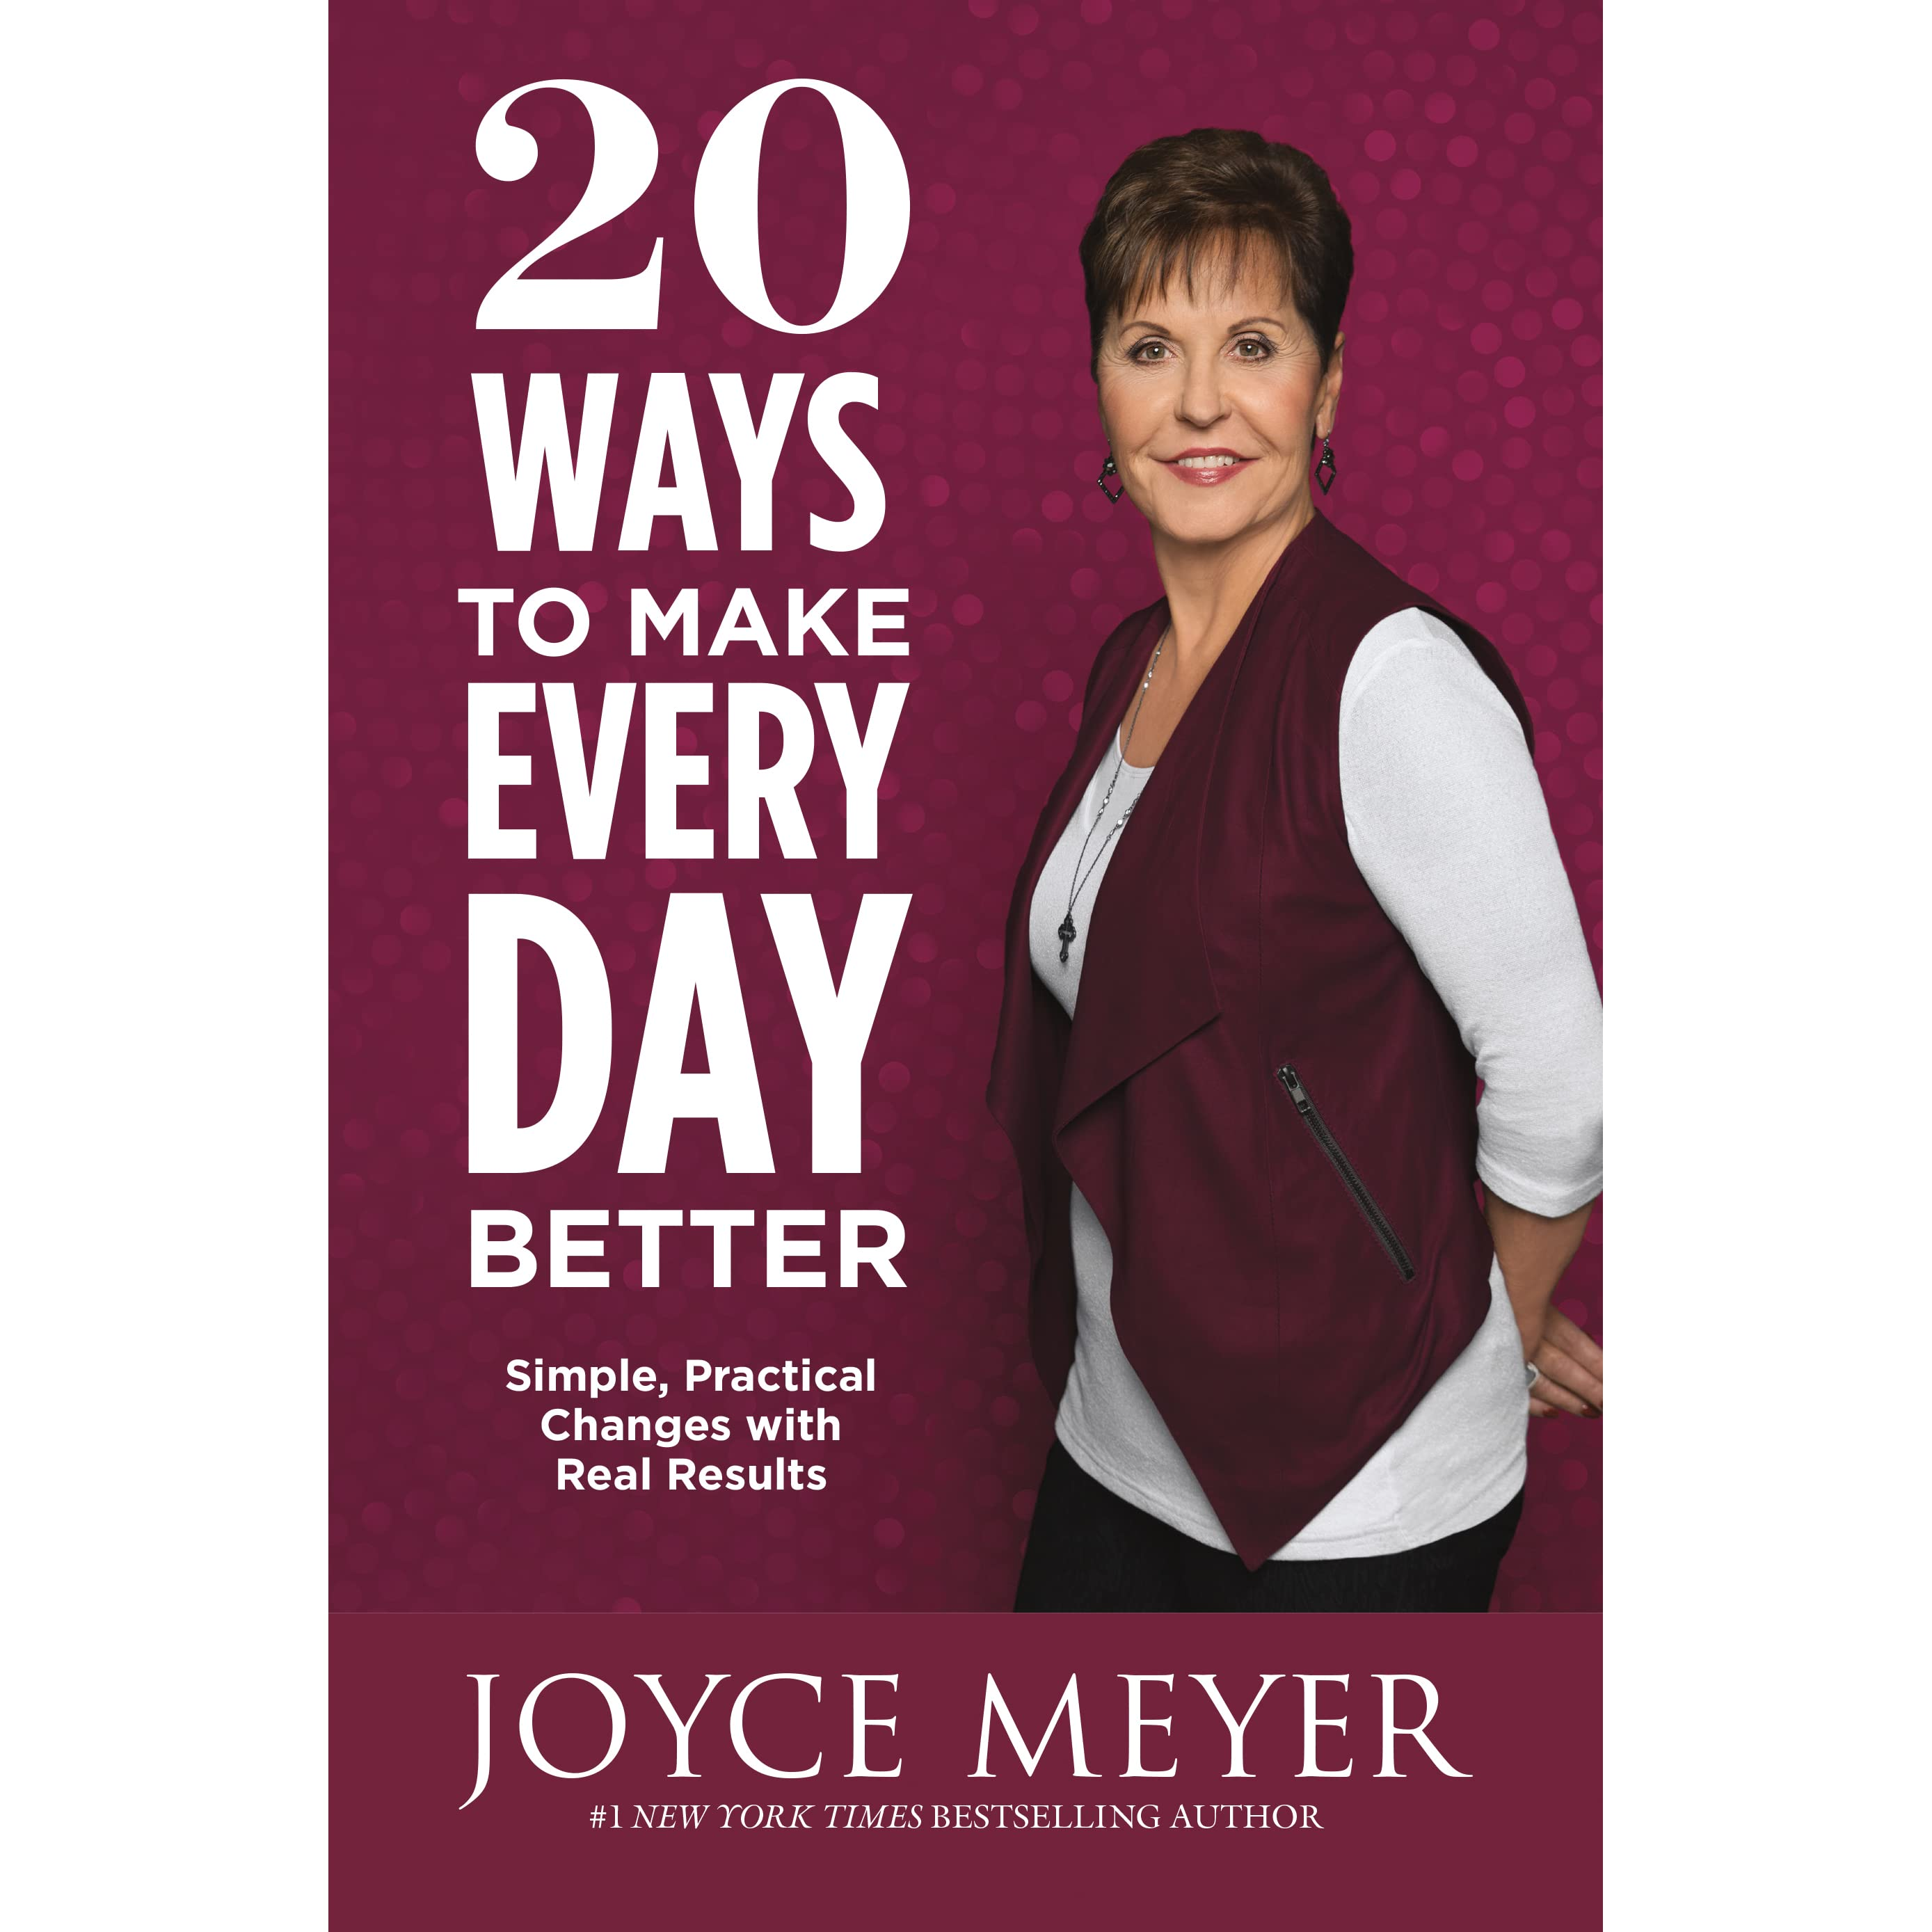 Joyce Meyer Enjoying Everyday Life Quotes 20 Ways To Make Every Day Better Simple Practical Changes With